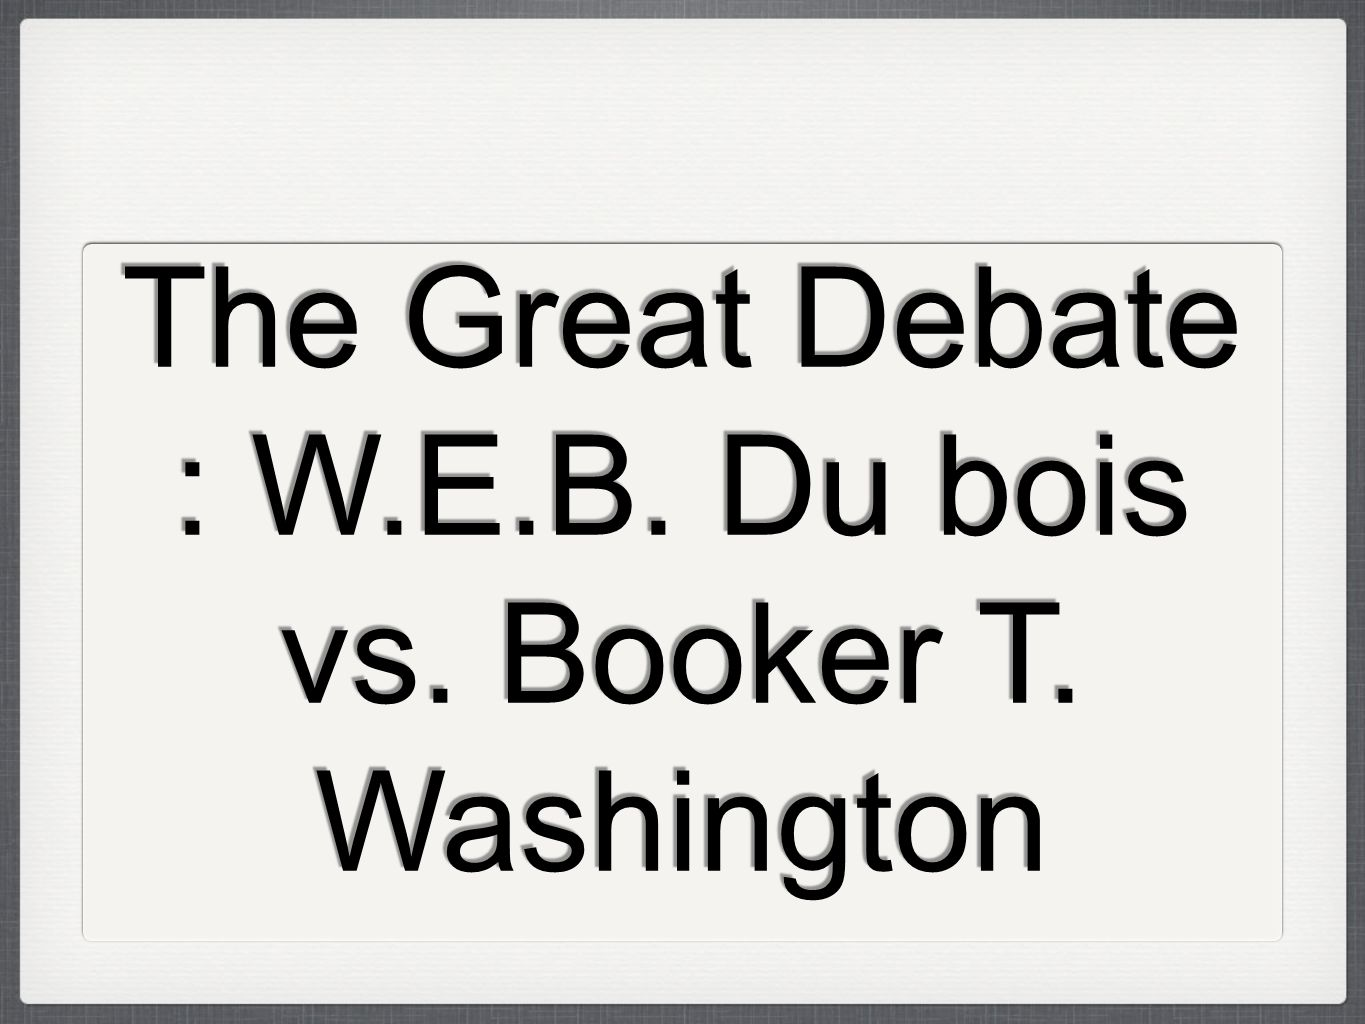 washington vs w e b du bois Document resume ed 467 297 so 034 064 title clash of the titans: booker t washington and w e b du bois curriculum based education program, grade 11.